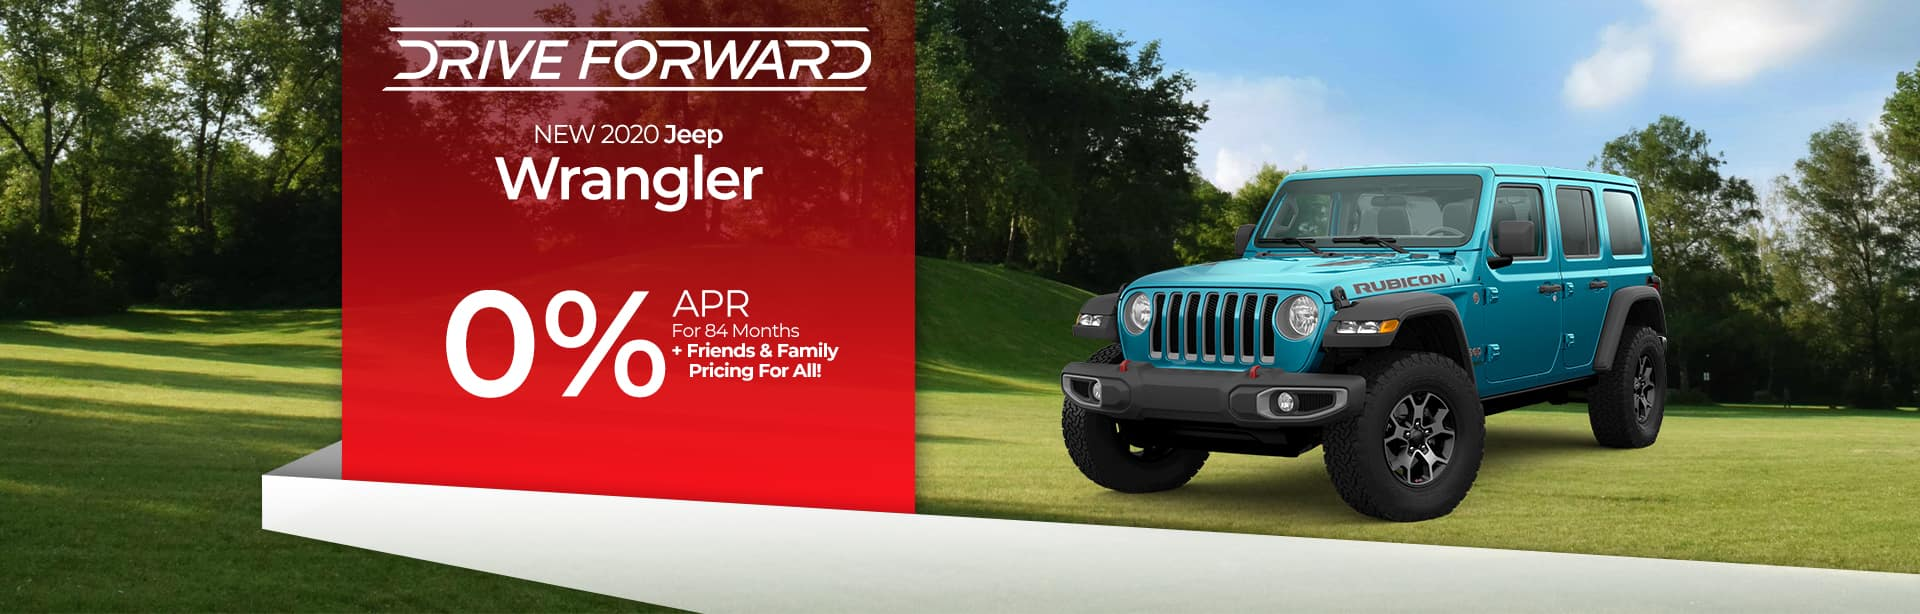 Finance a New Jeep Wrangler at 0% near Kendallville, Indiana